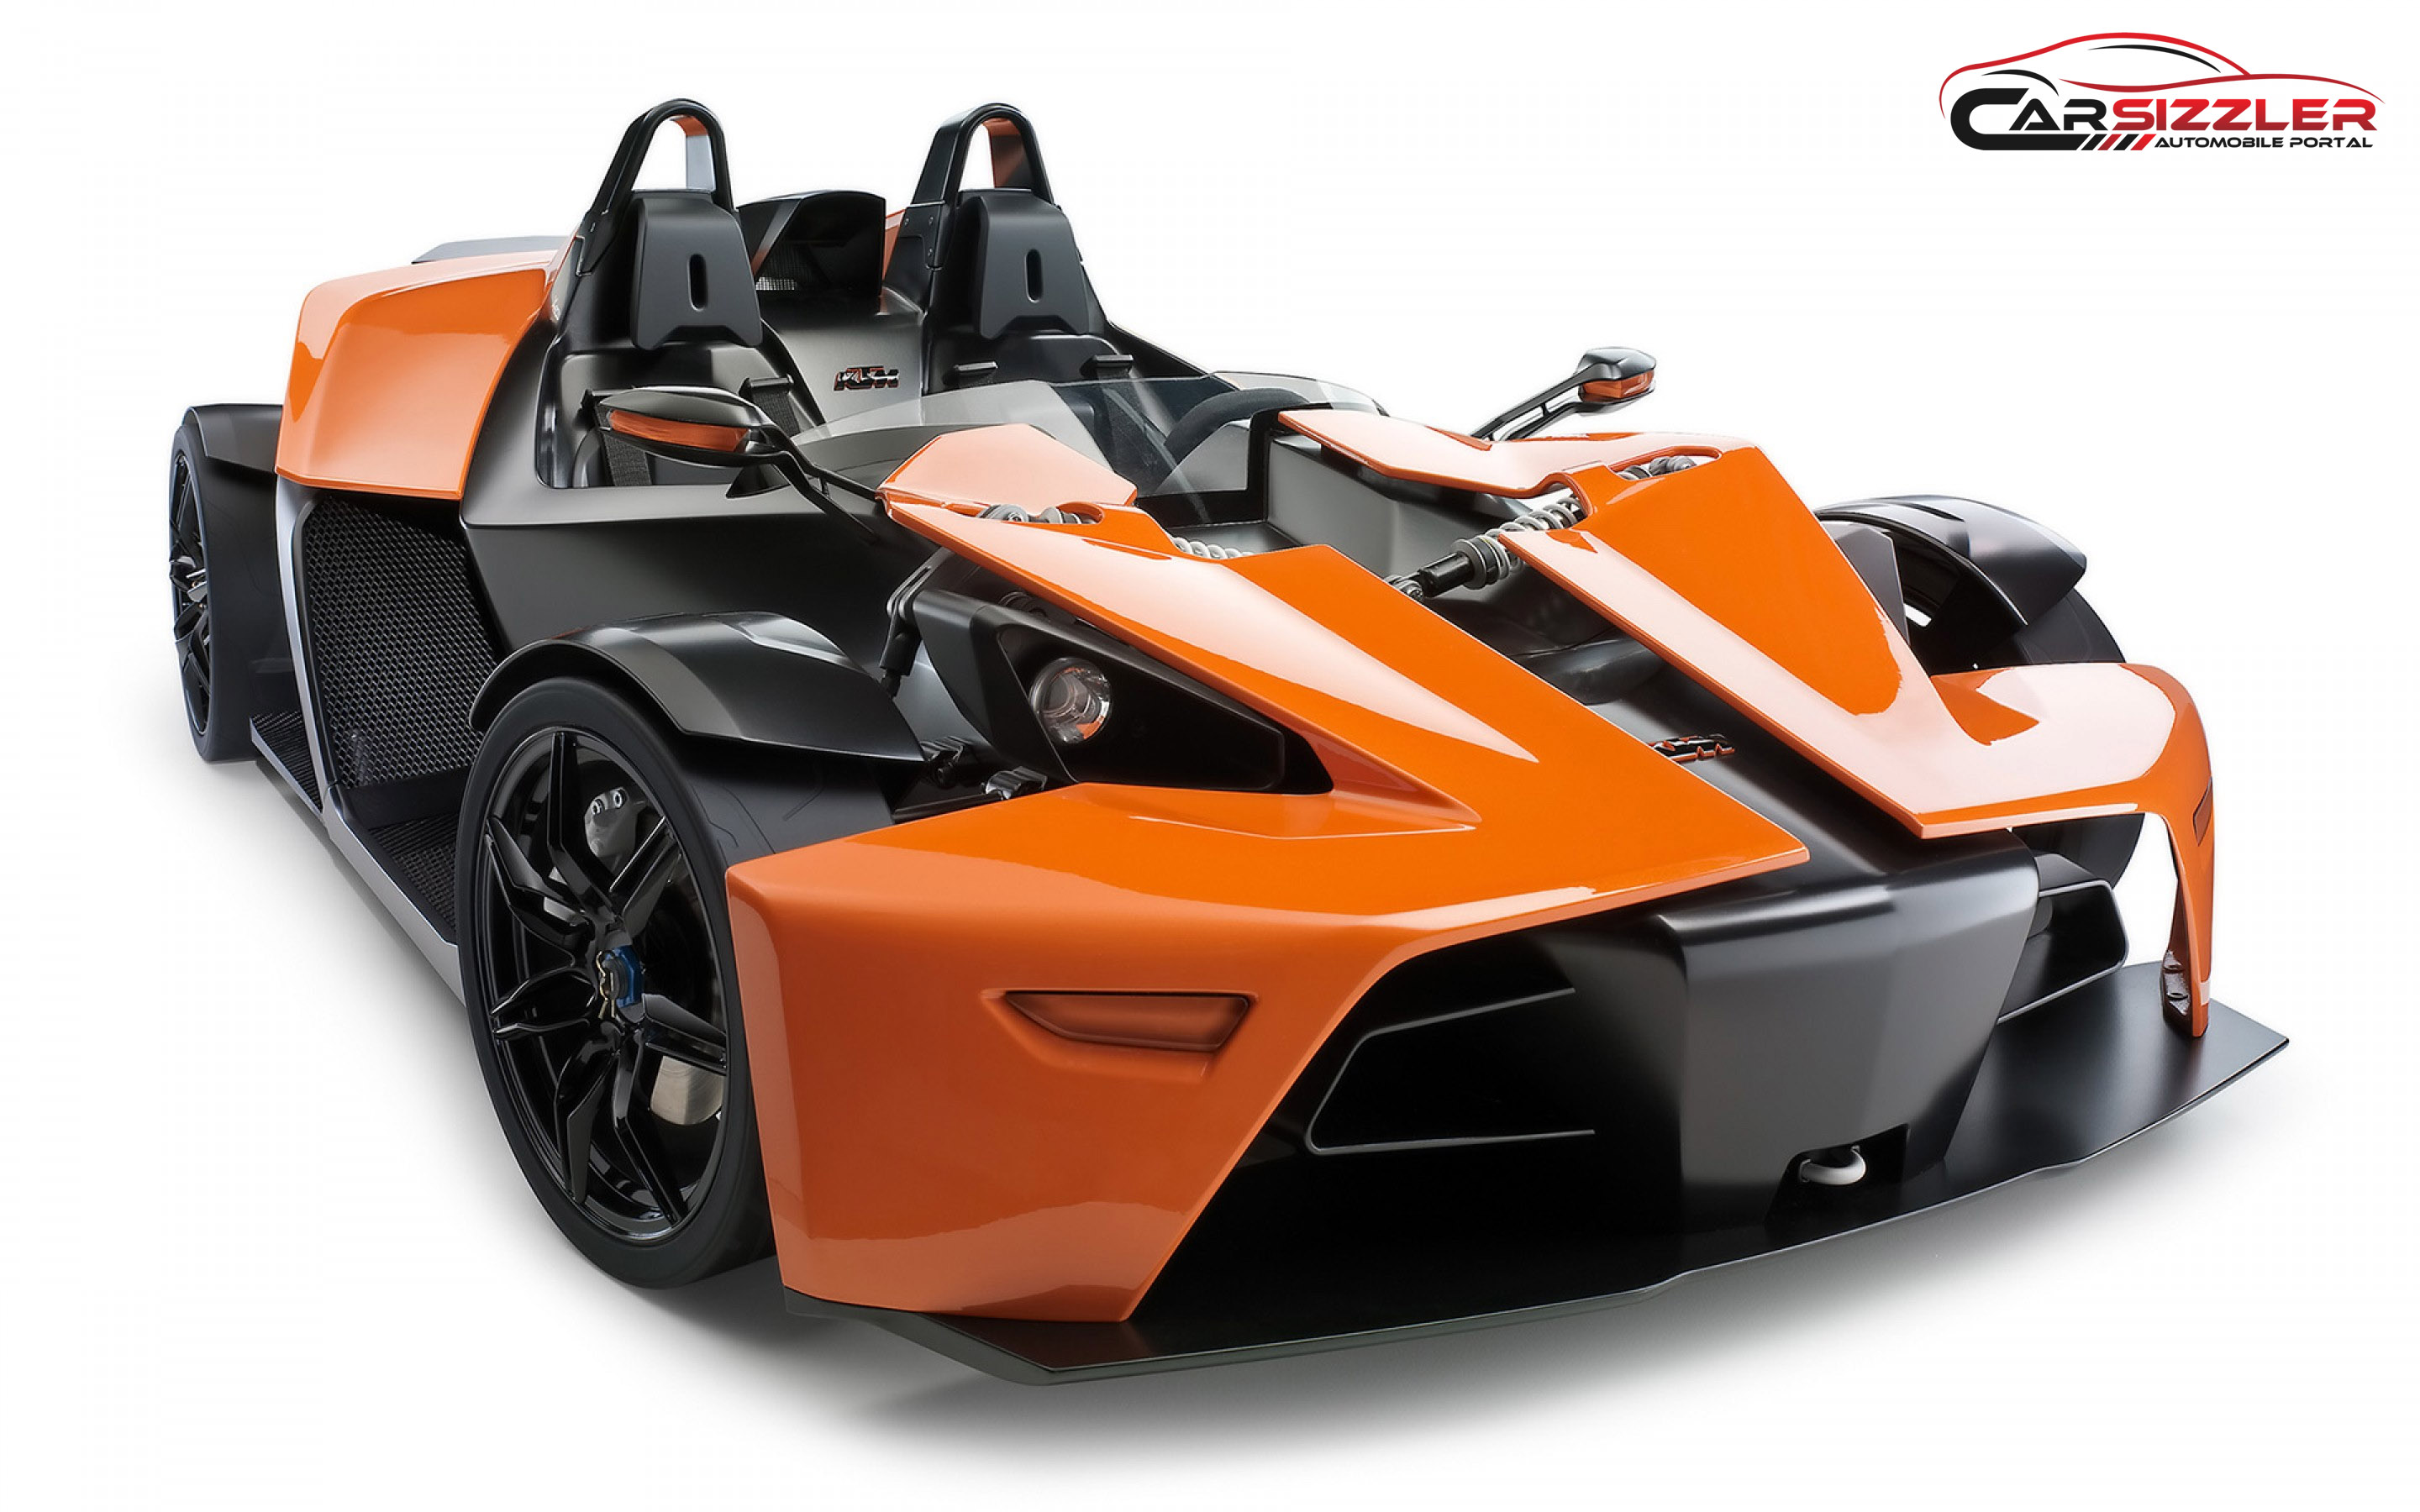 New Cars Image Gallery Video Gallery Wallpaper CarSizzlercom 2880x1800